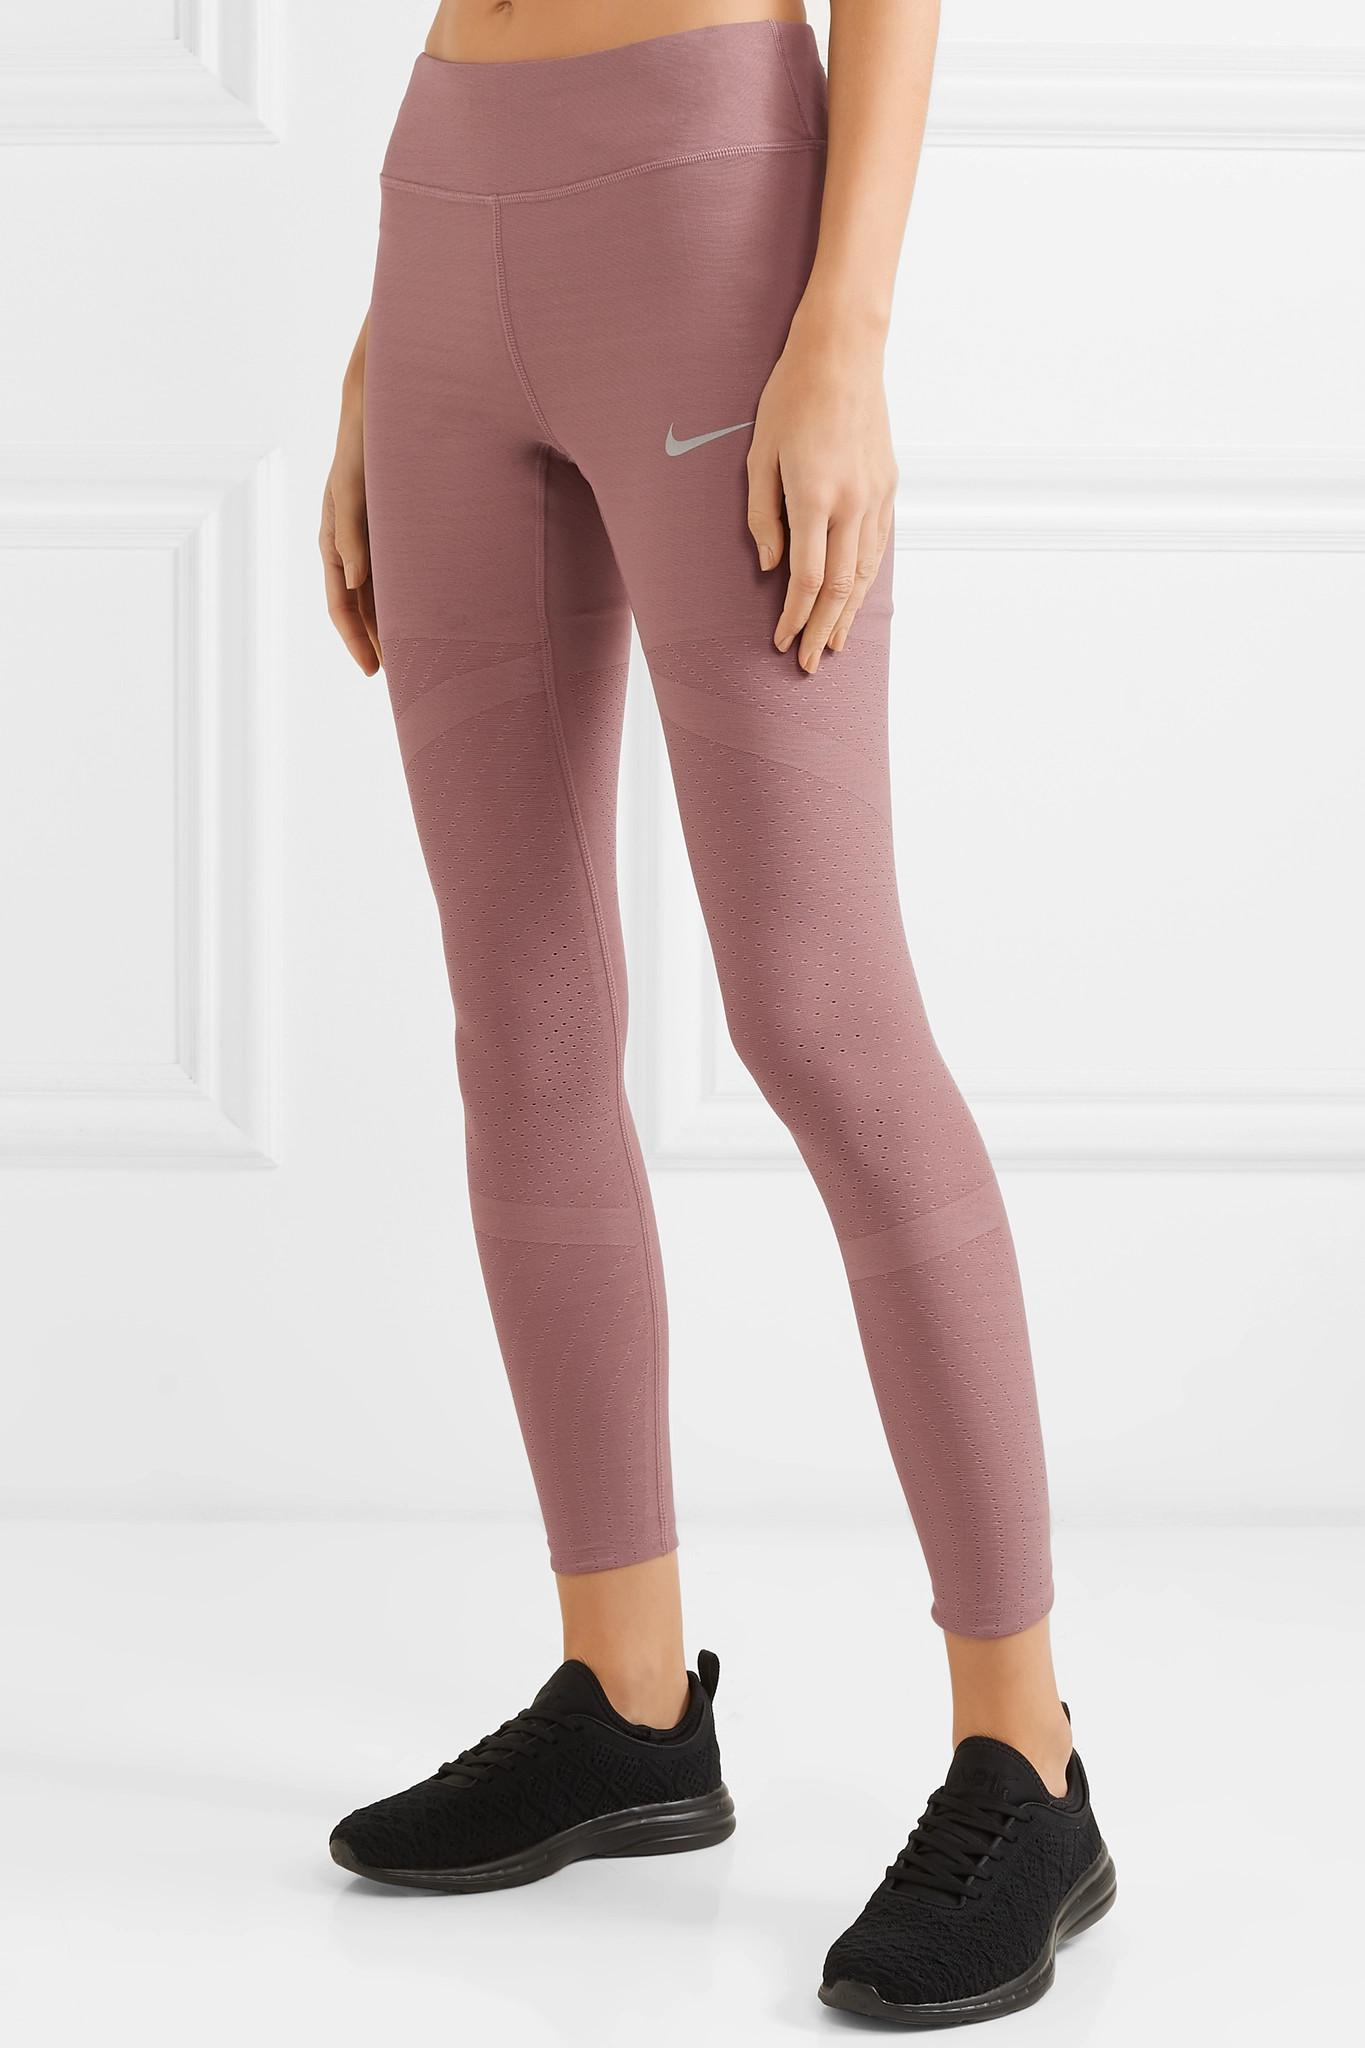 762fa677c48 nike-purple-Legging-En-Resille-Stretch-Epic-Luna-Athena.jpeg